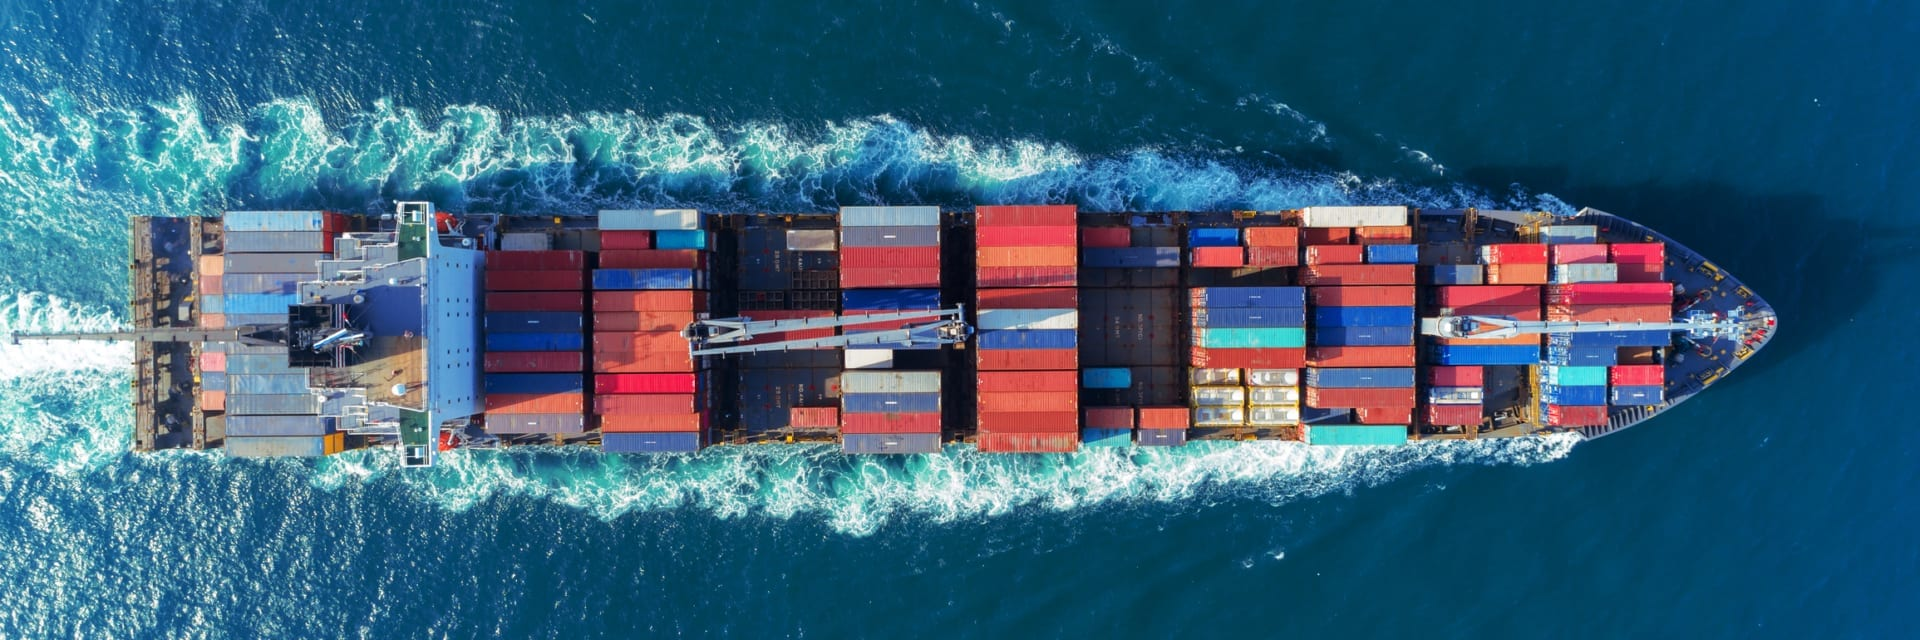 Top view of ocean freight ship with containers